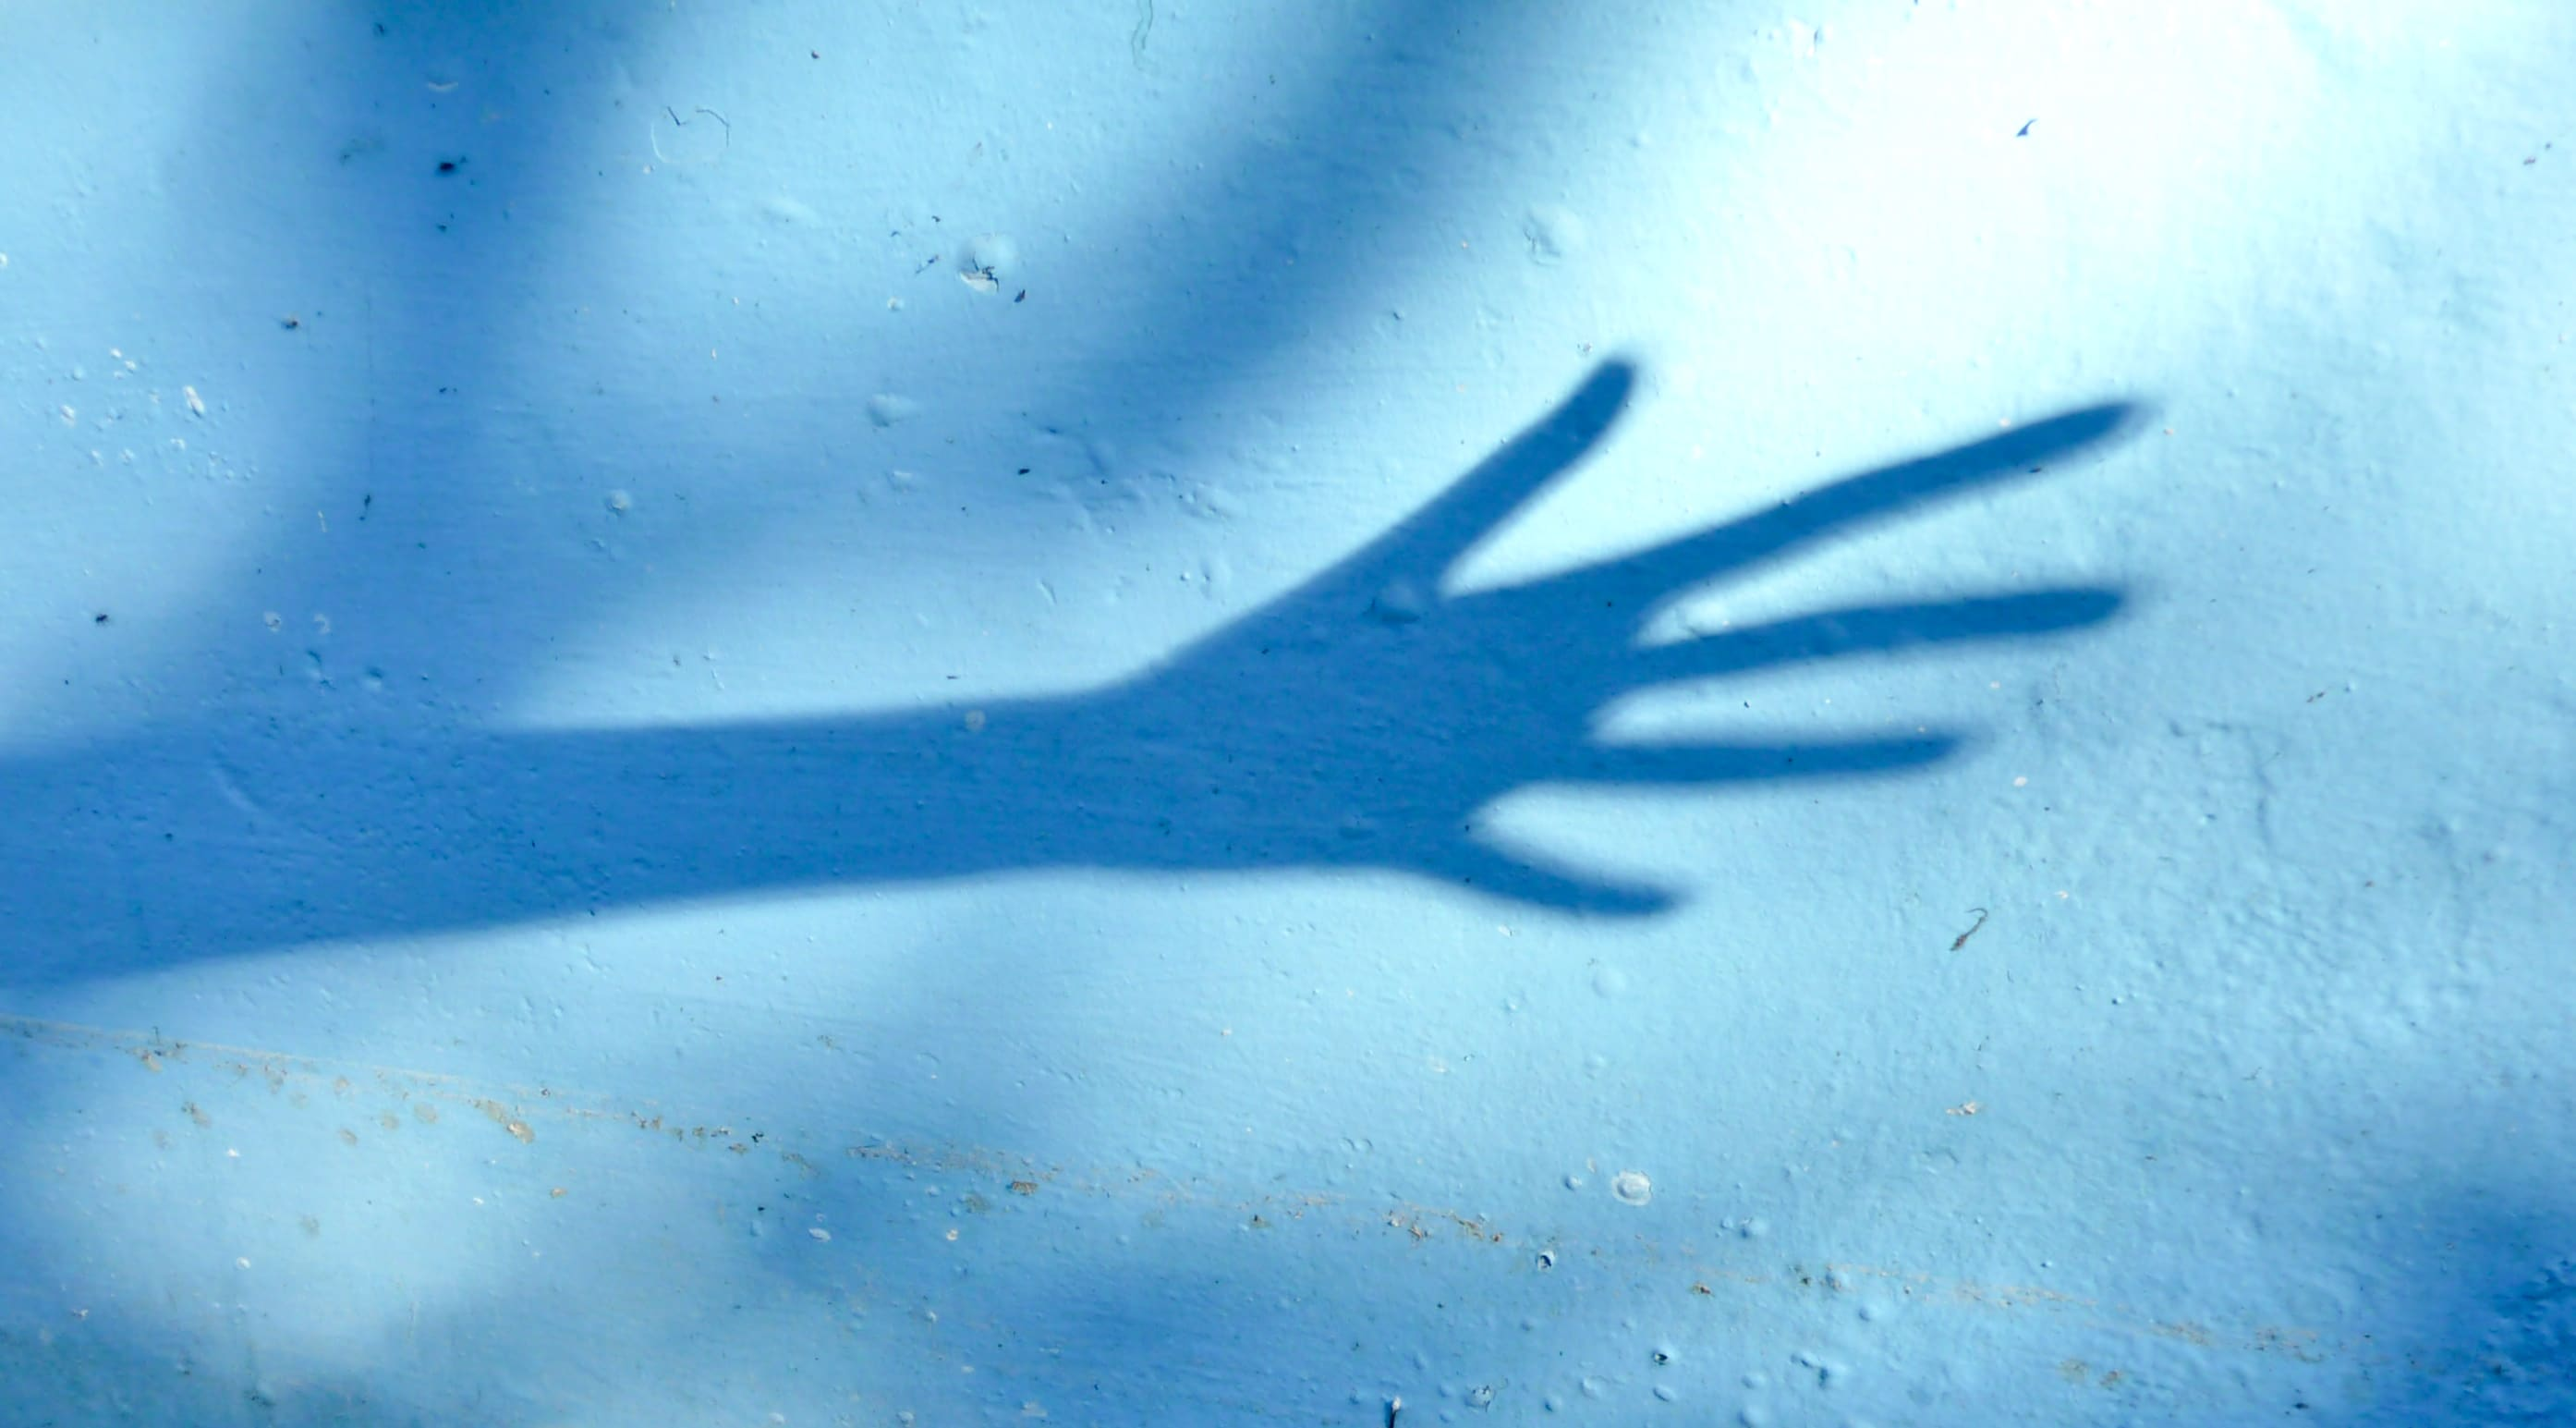 A shadow of an outstretched arm against a blue wall